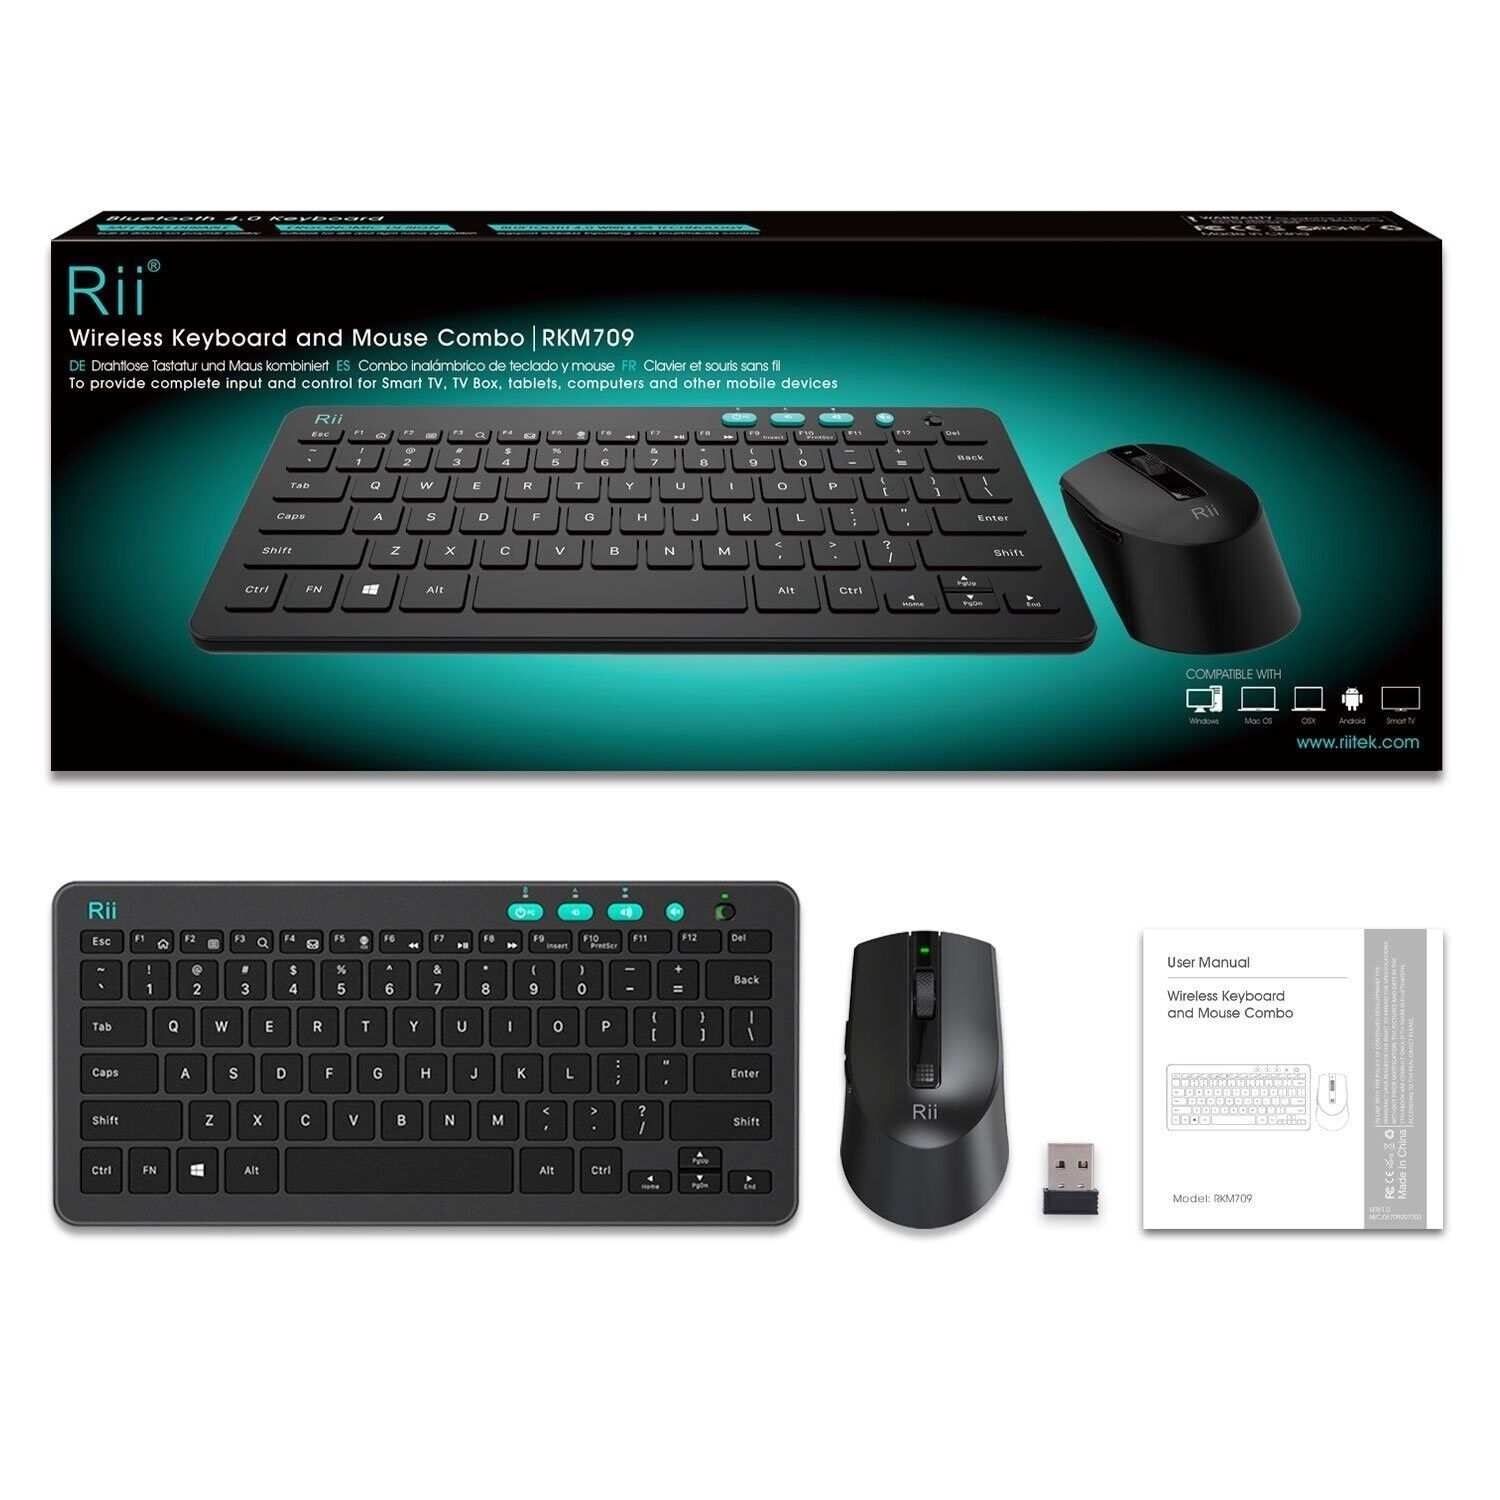 Slim Wireless Keyboard and Mouse Compact Multimedia PC Lapto